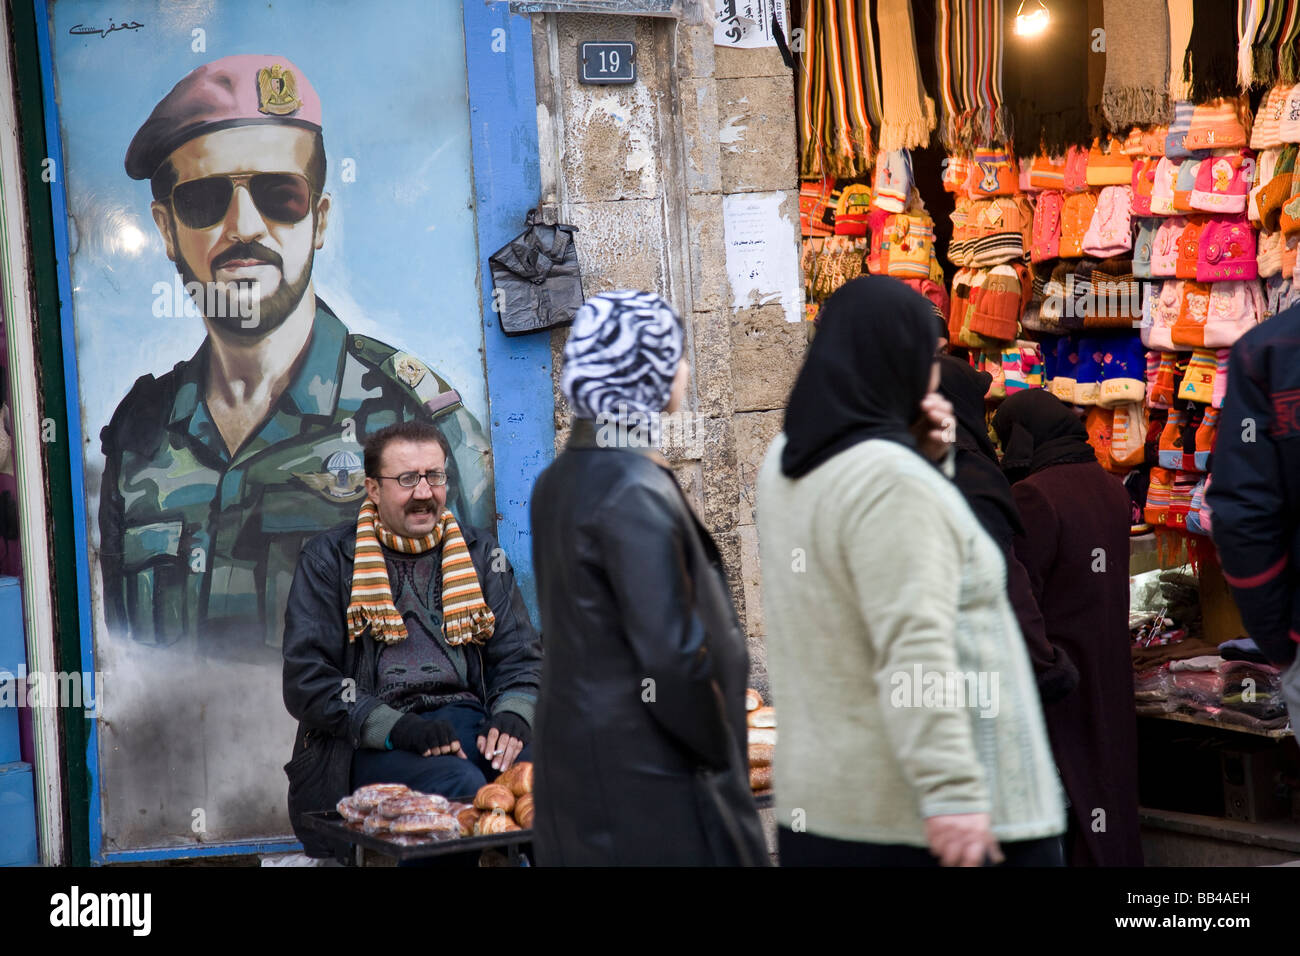 Painting of Basil al-Assad, son of former President Hafez in Aleppo, Syria. - Stock Image